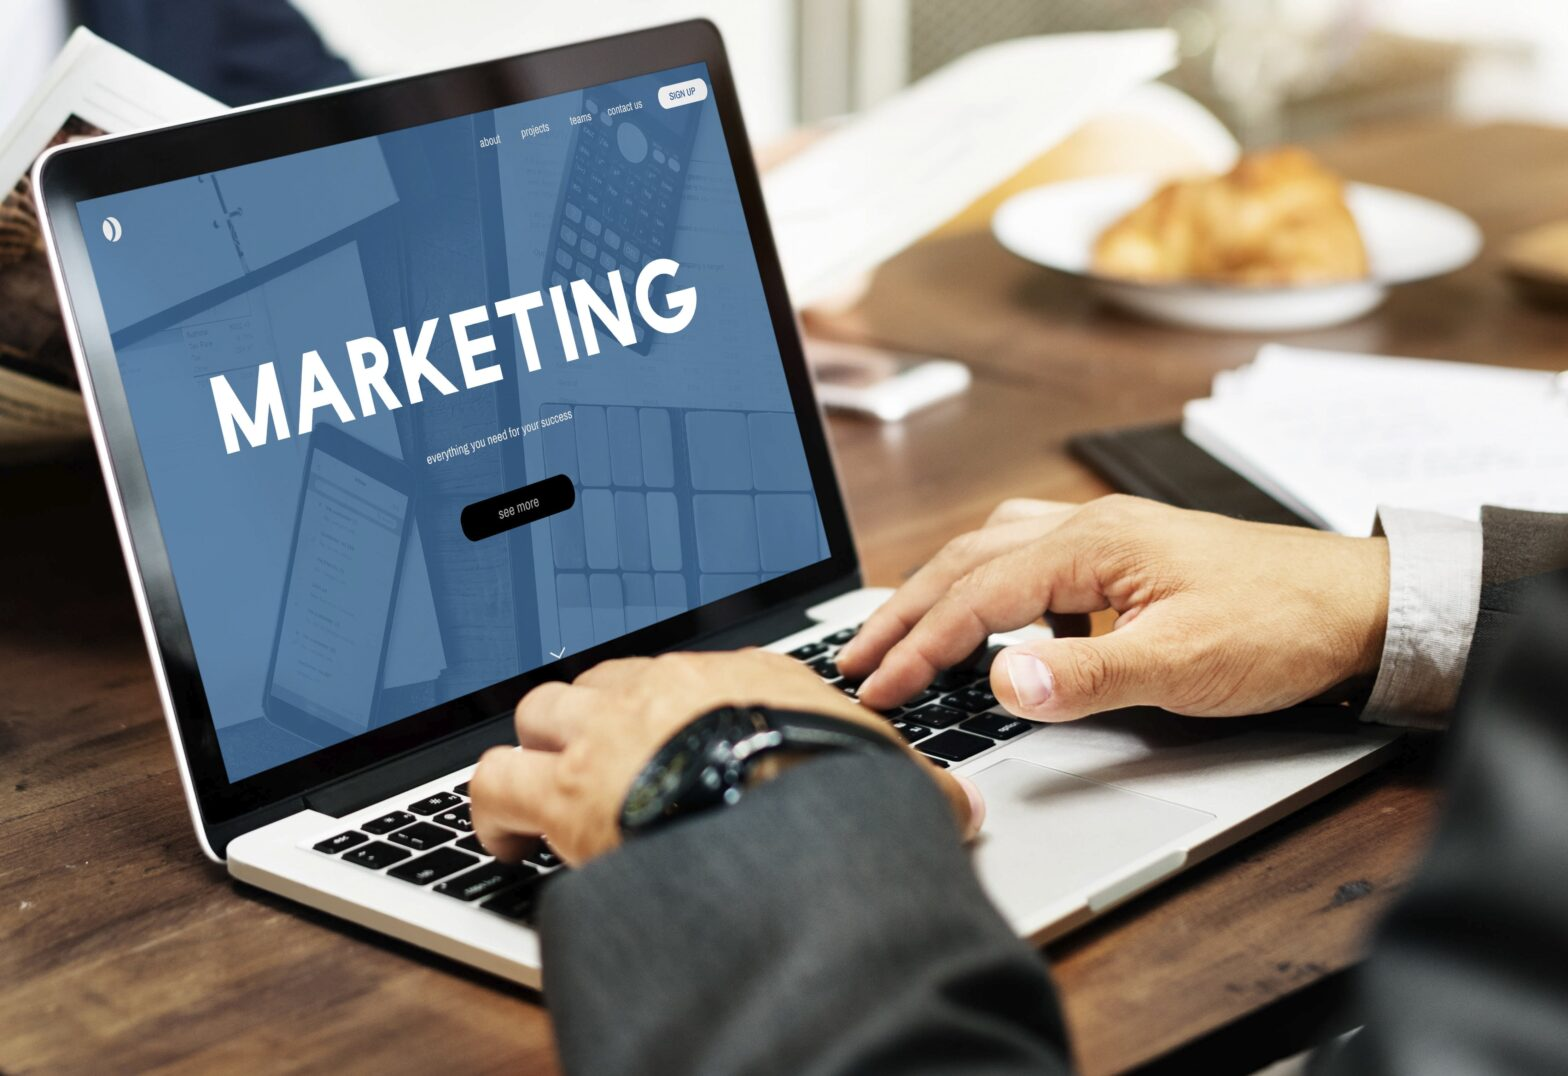 Top 5 Digital Marketing Strategies for your small business in 2021